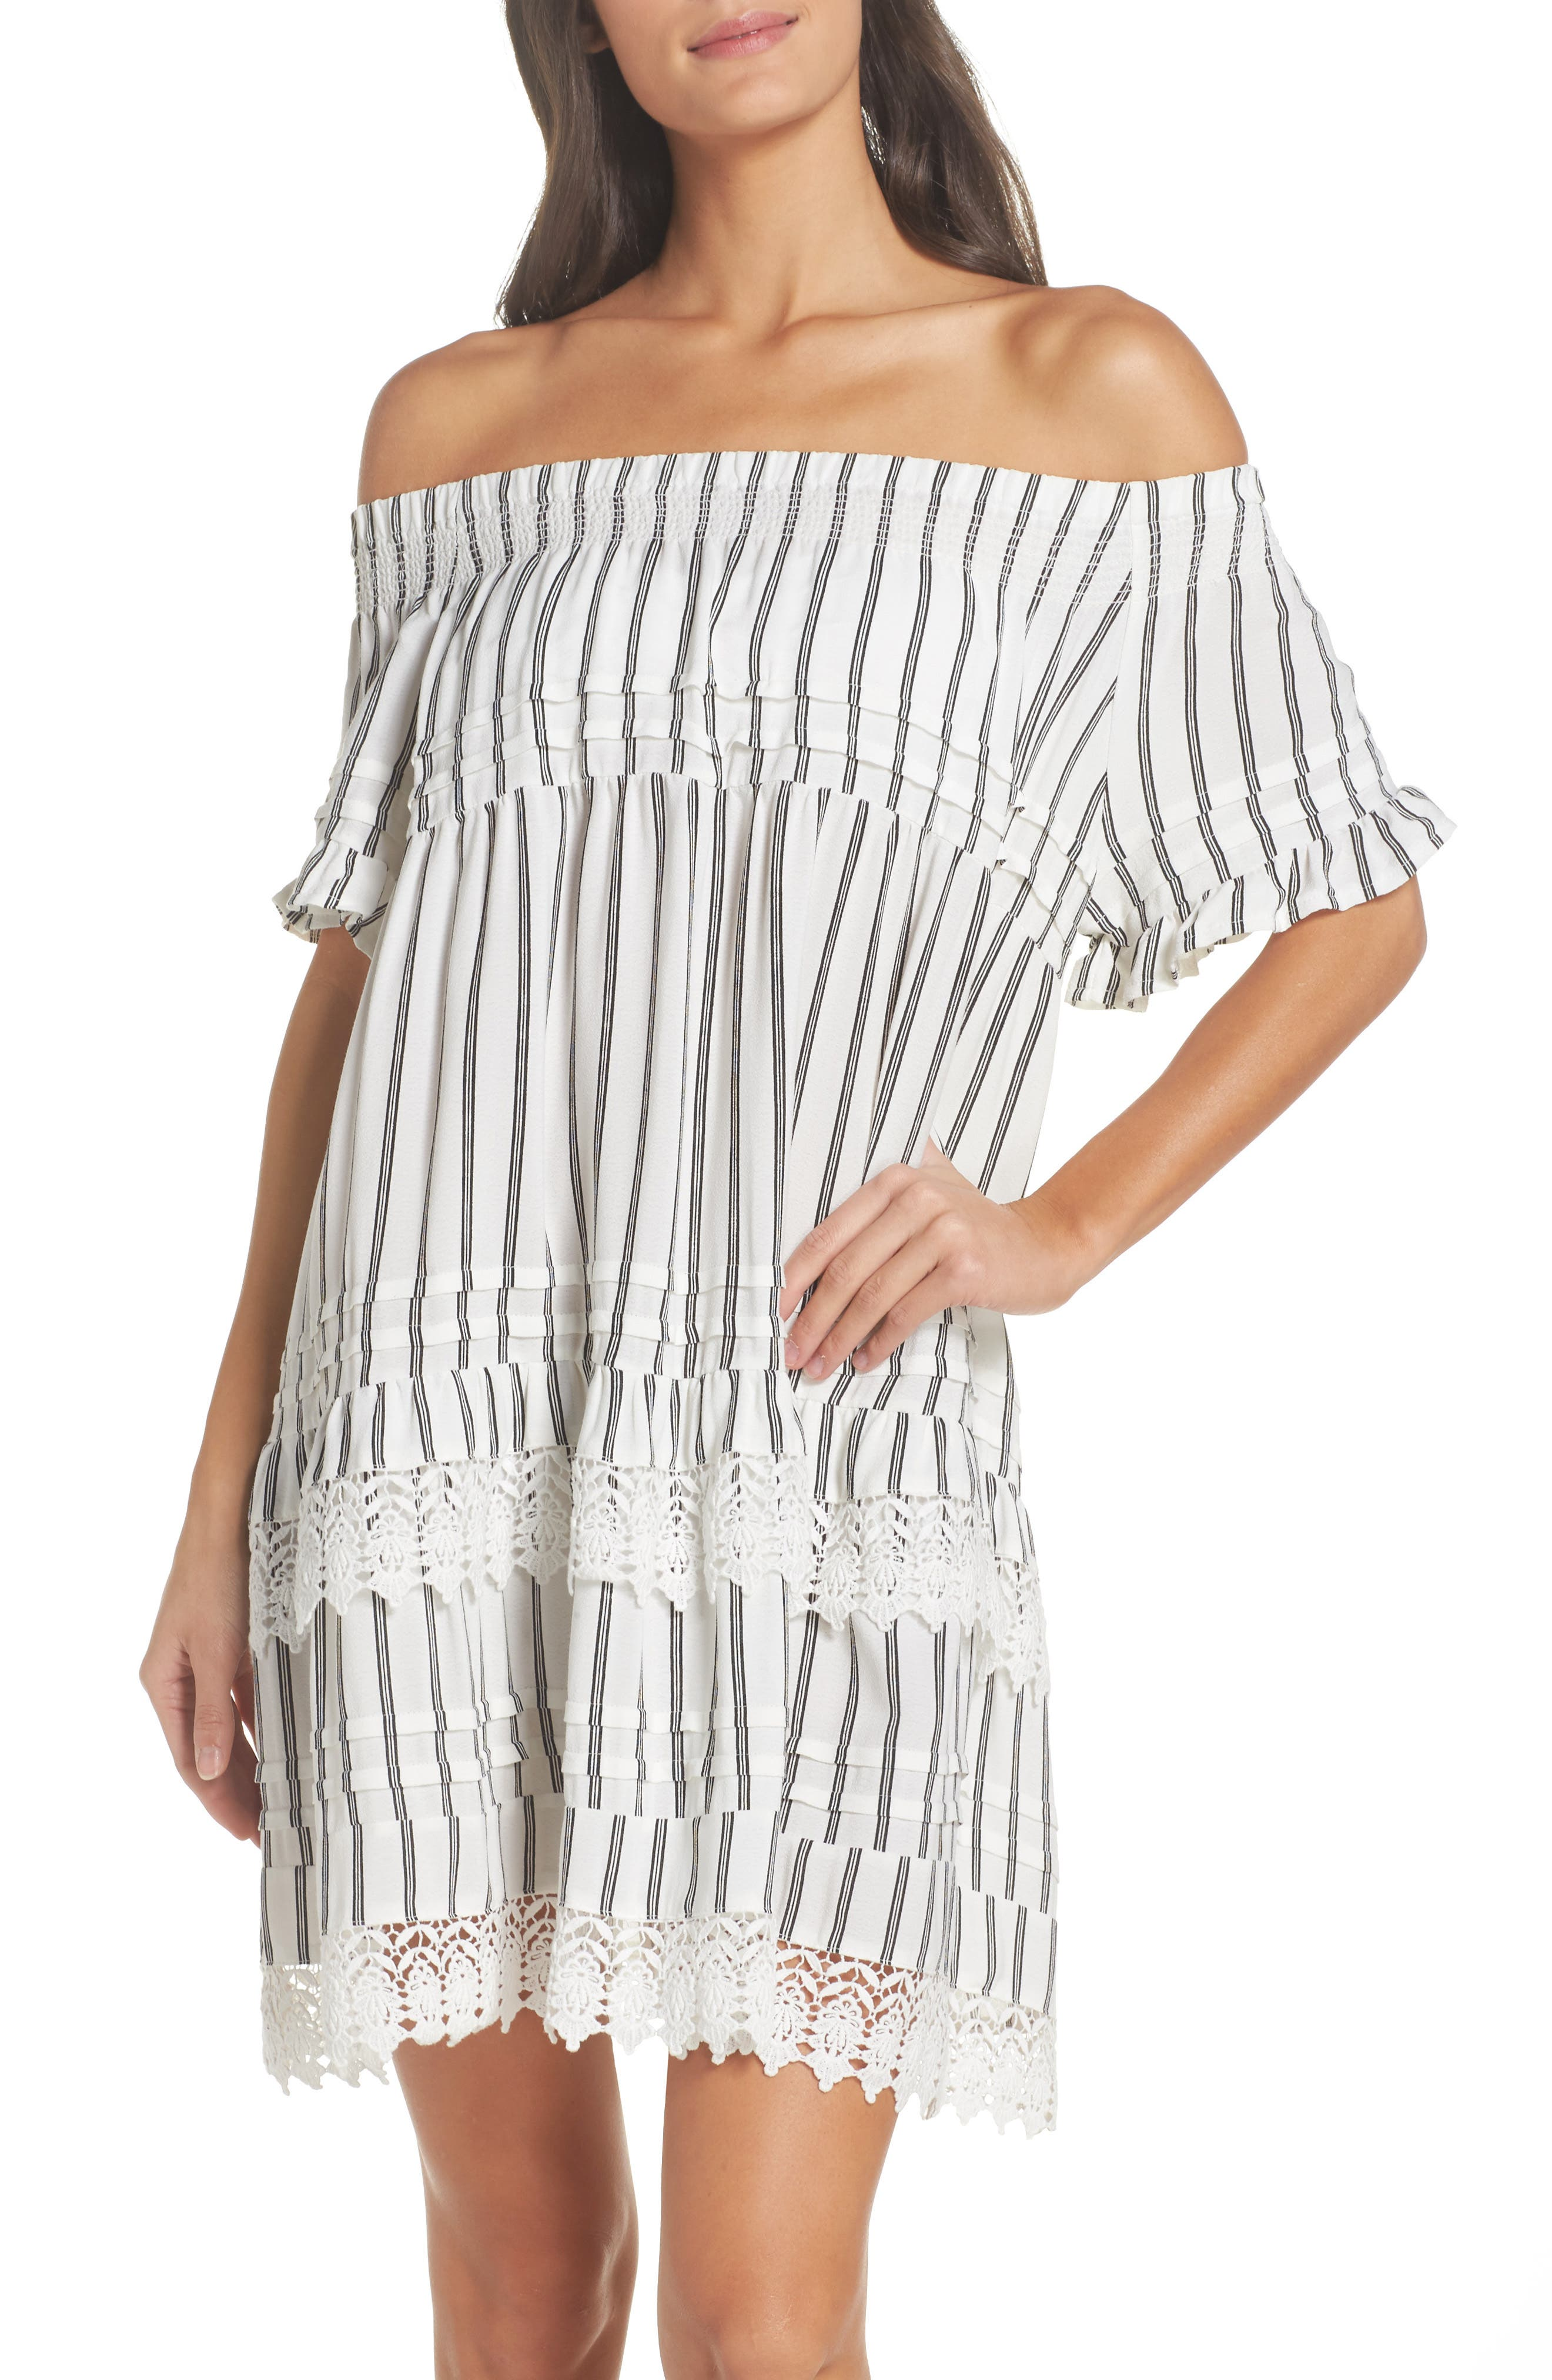 Off the Shoulder Cover-Up Dress,                             Main thumbnail 1, color,                             Ivory/ Black